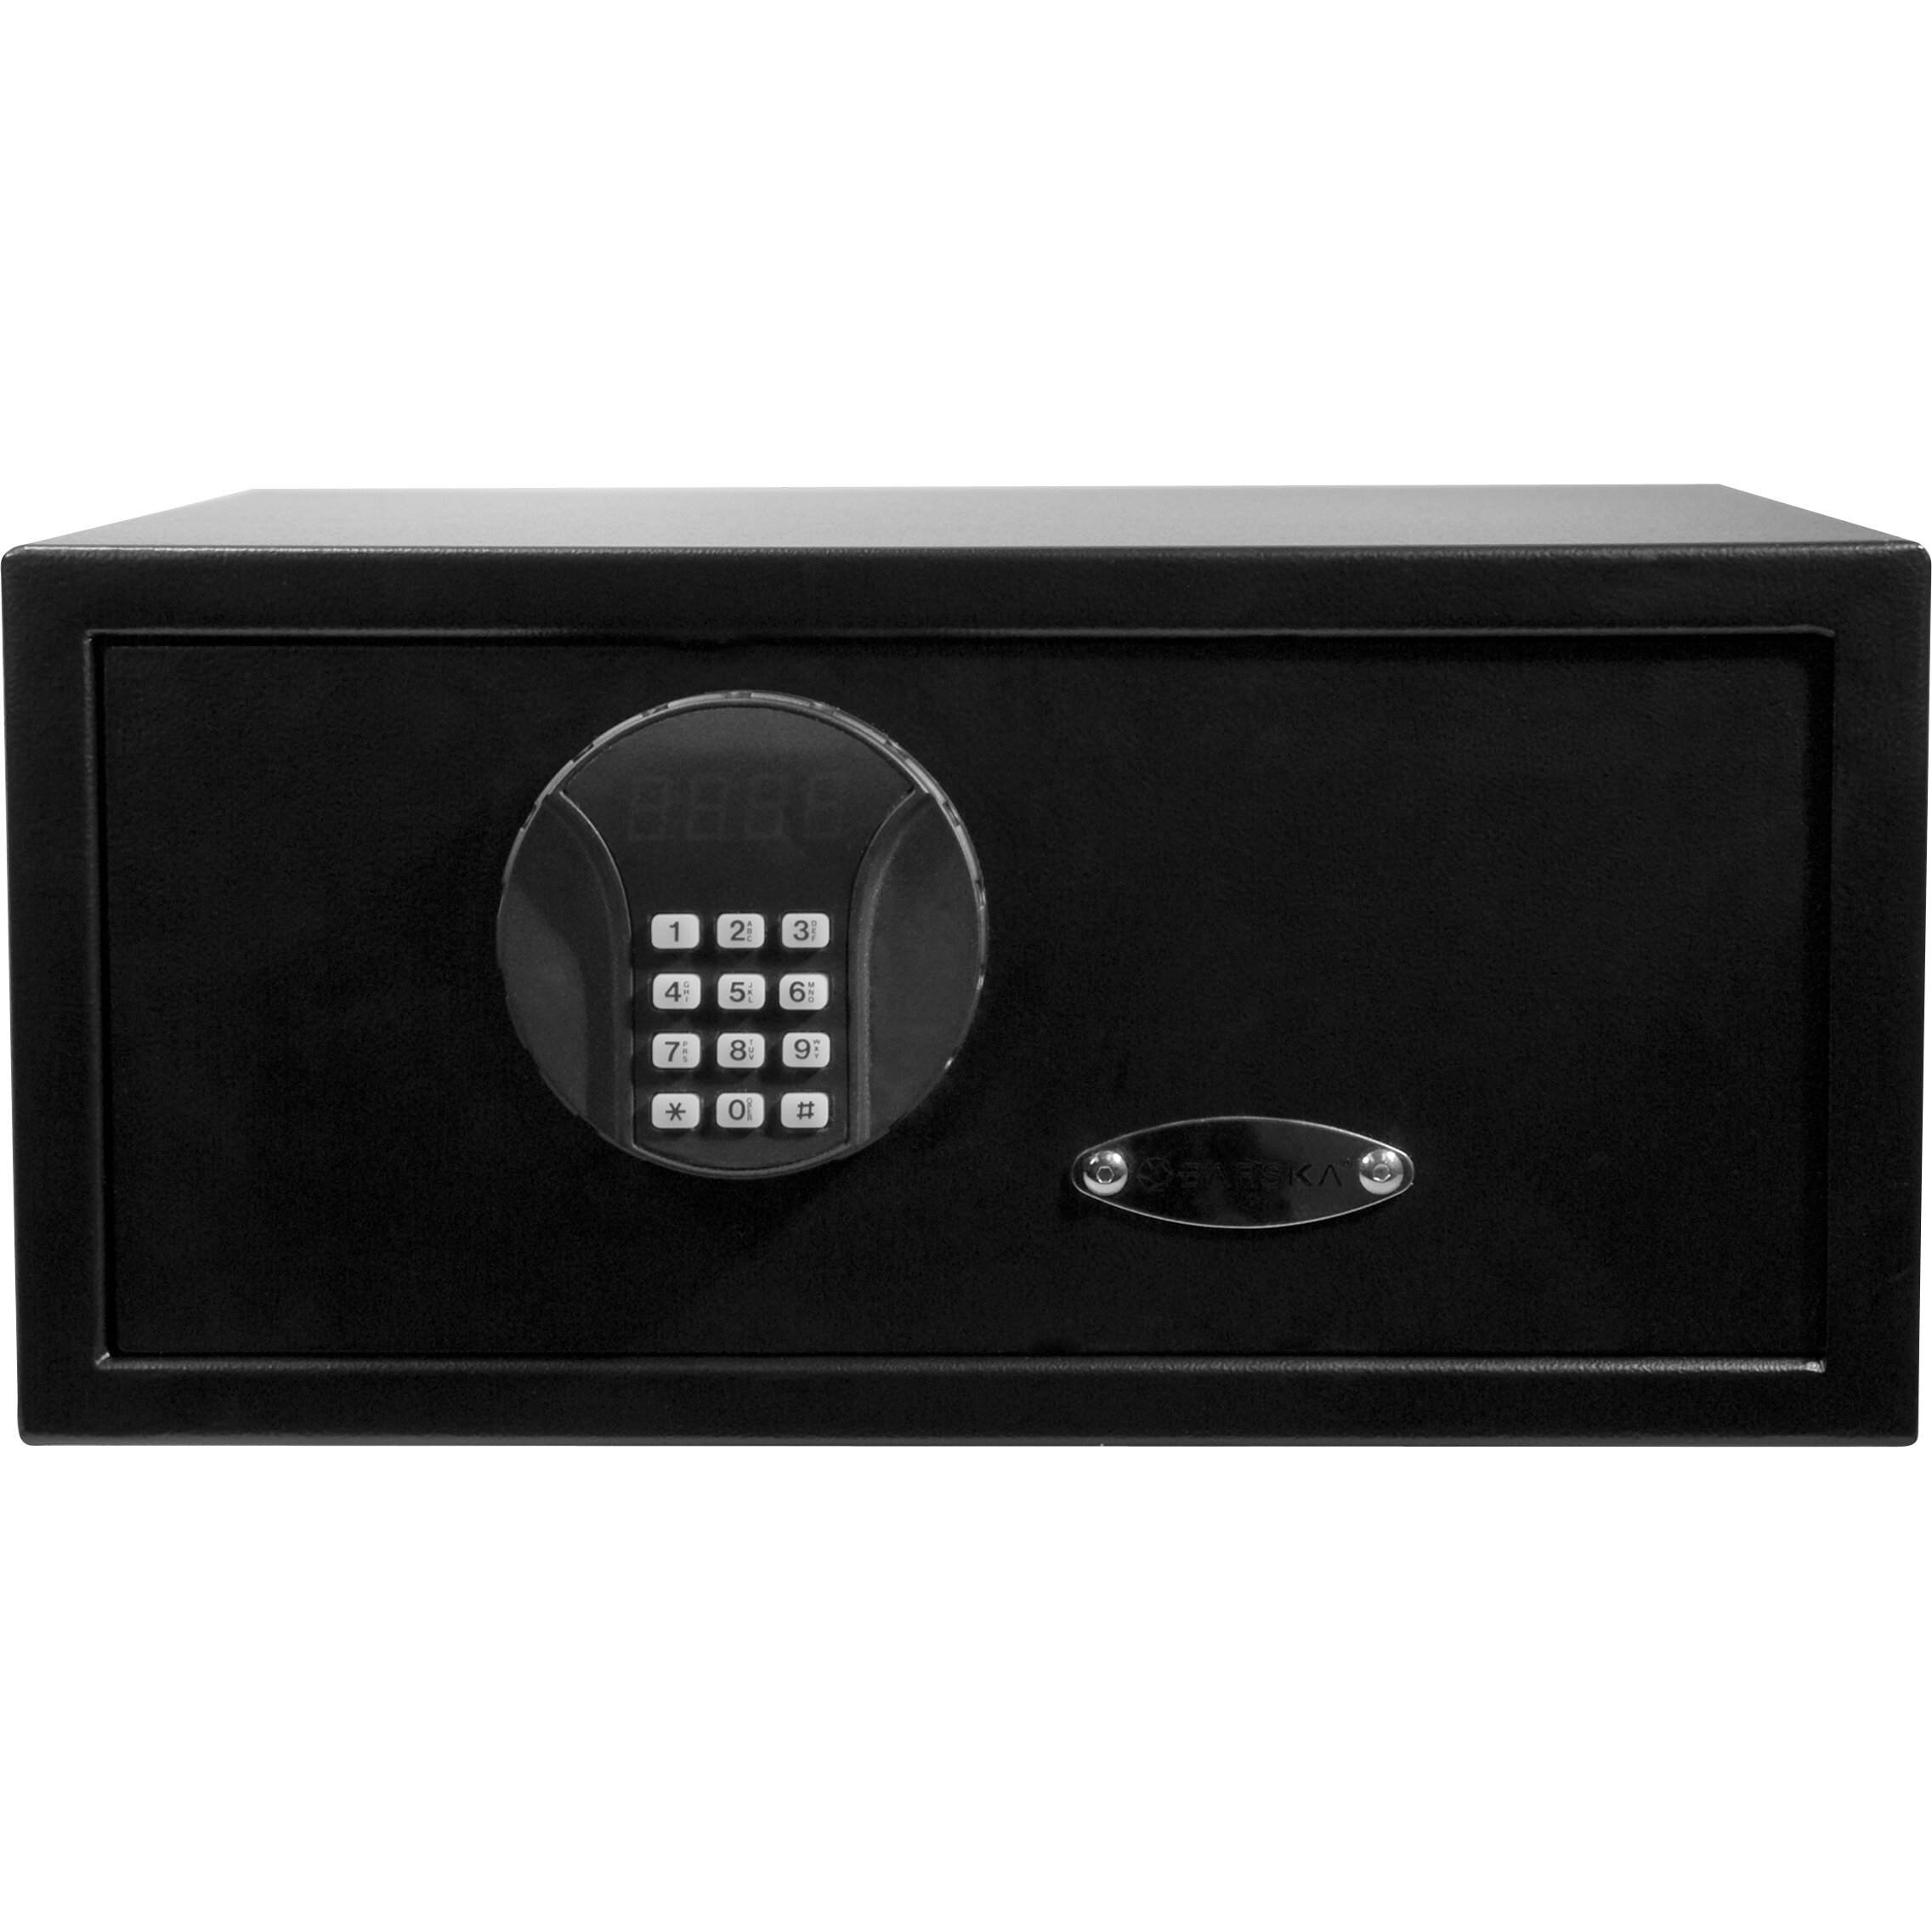 digital keypad lock wall safe wayfair. Black Bedroom Furniture Sets. Home Design Ideas